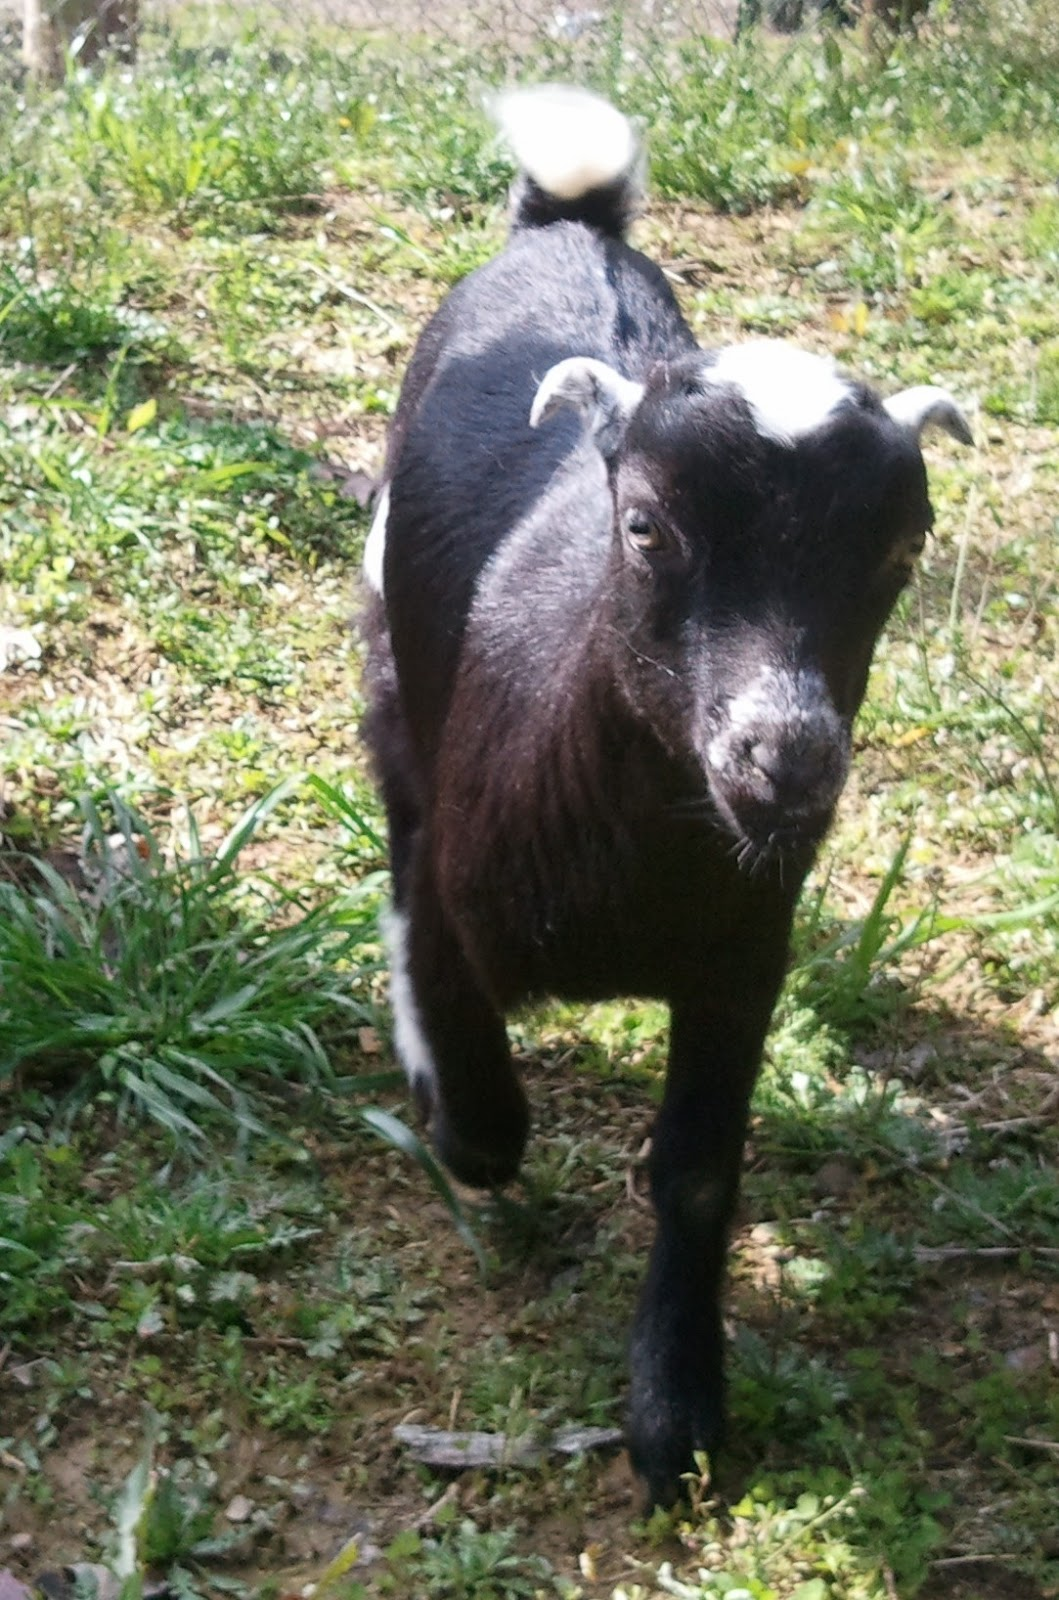 Sanctuary Farm: Deworming and Goats